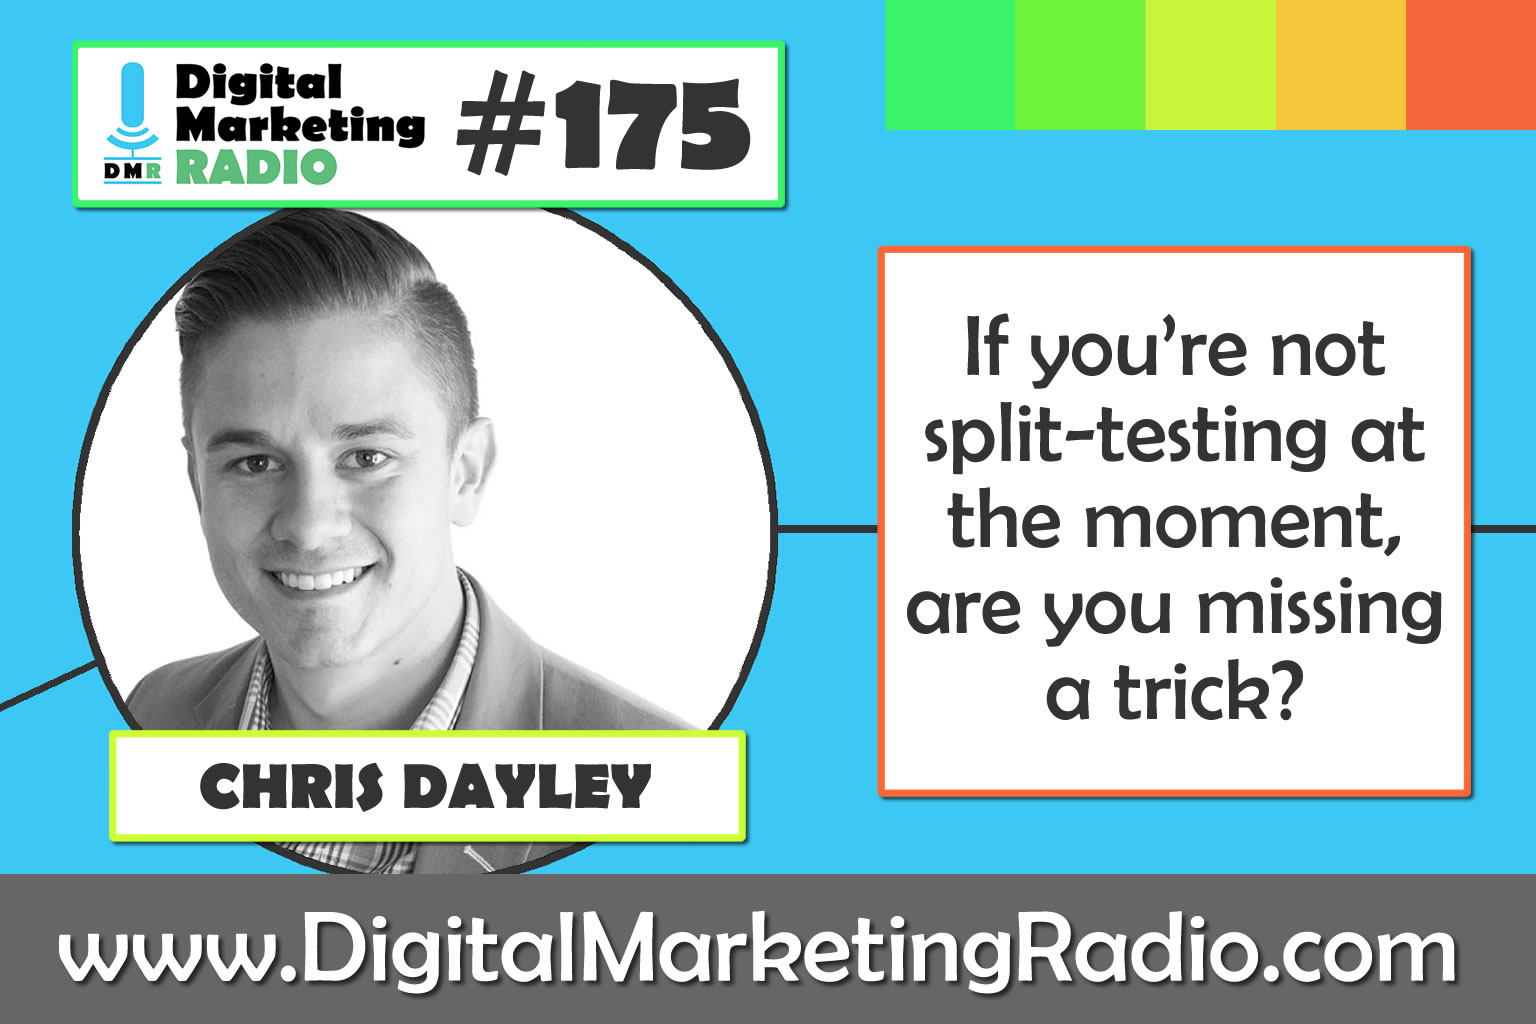 If you're not split-testing at the moment, are you missing a trick? - CHRIS DAYLEY